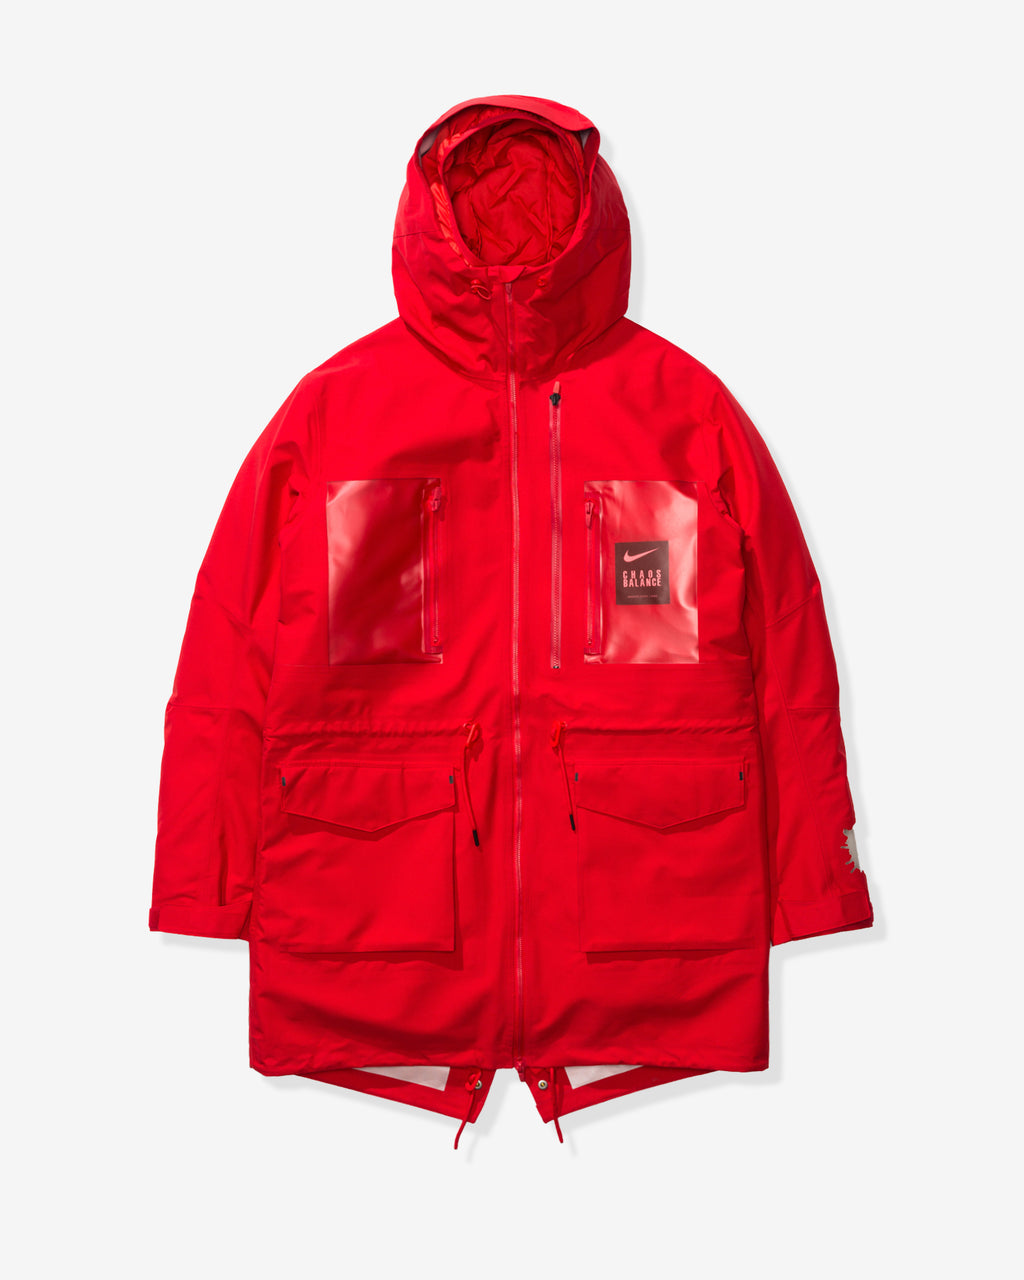 NIKE X UNDERCOVER NRG TC PARKA FISH TAIL 3L - SPORTRED/WHITE